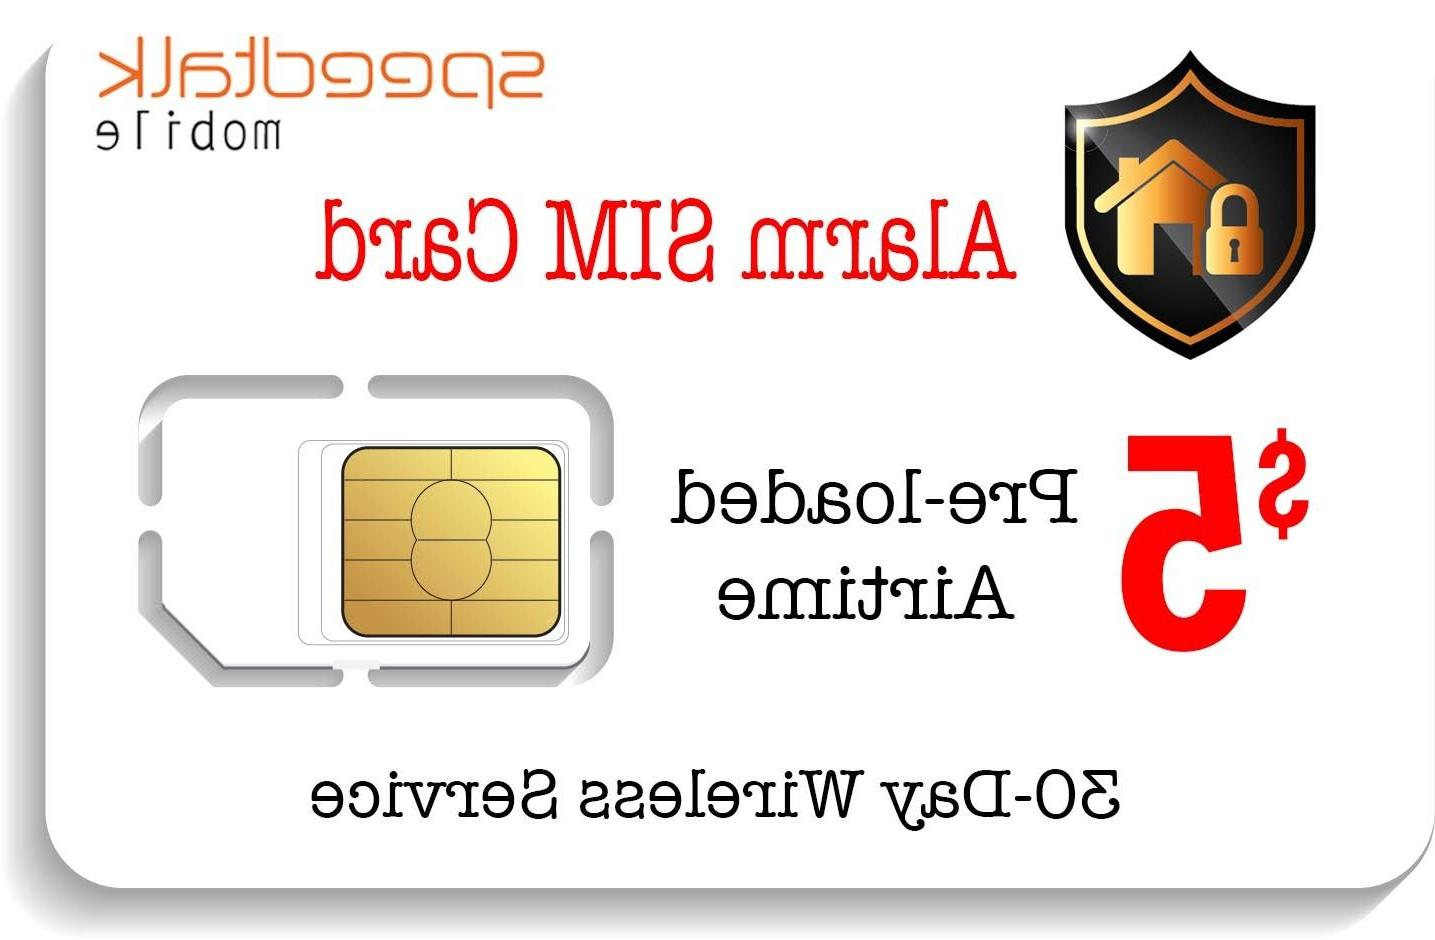 $5 Prepaid SIM Card for GSM Home Alarm + GPS Tracker Service